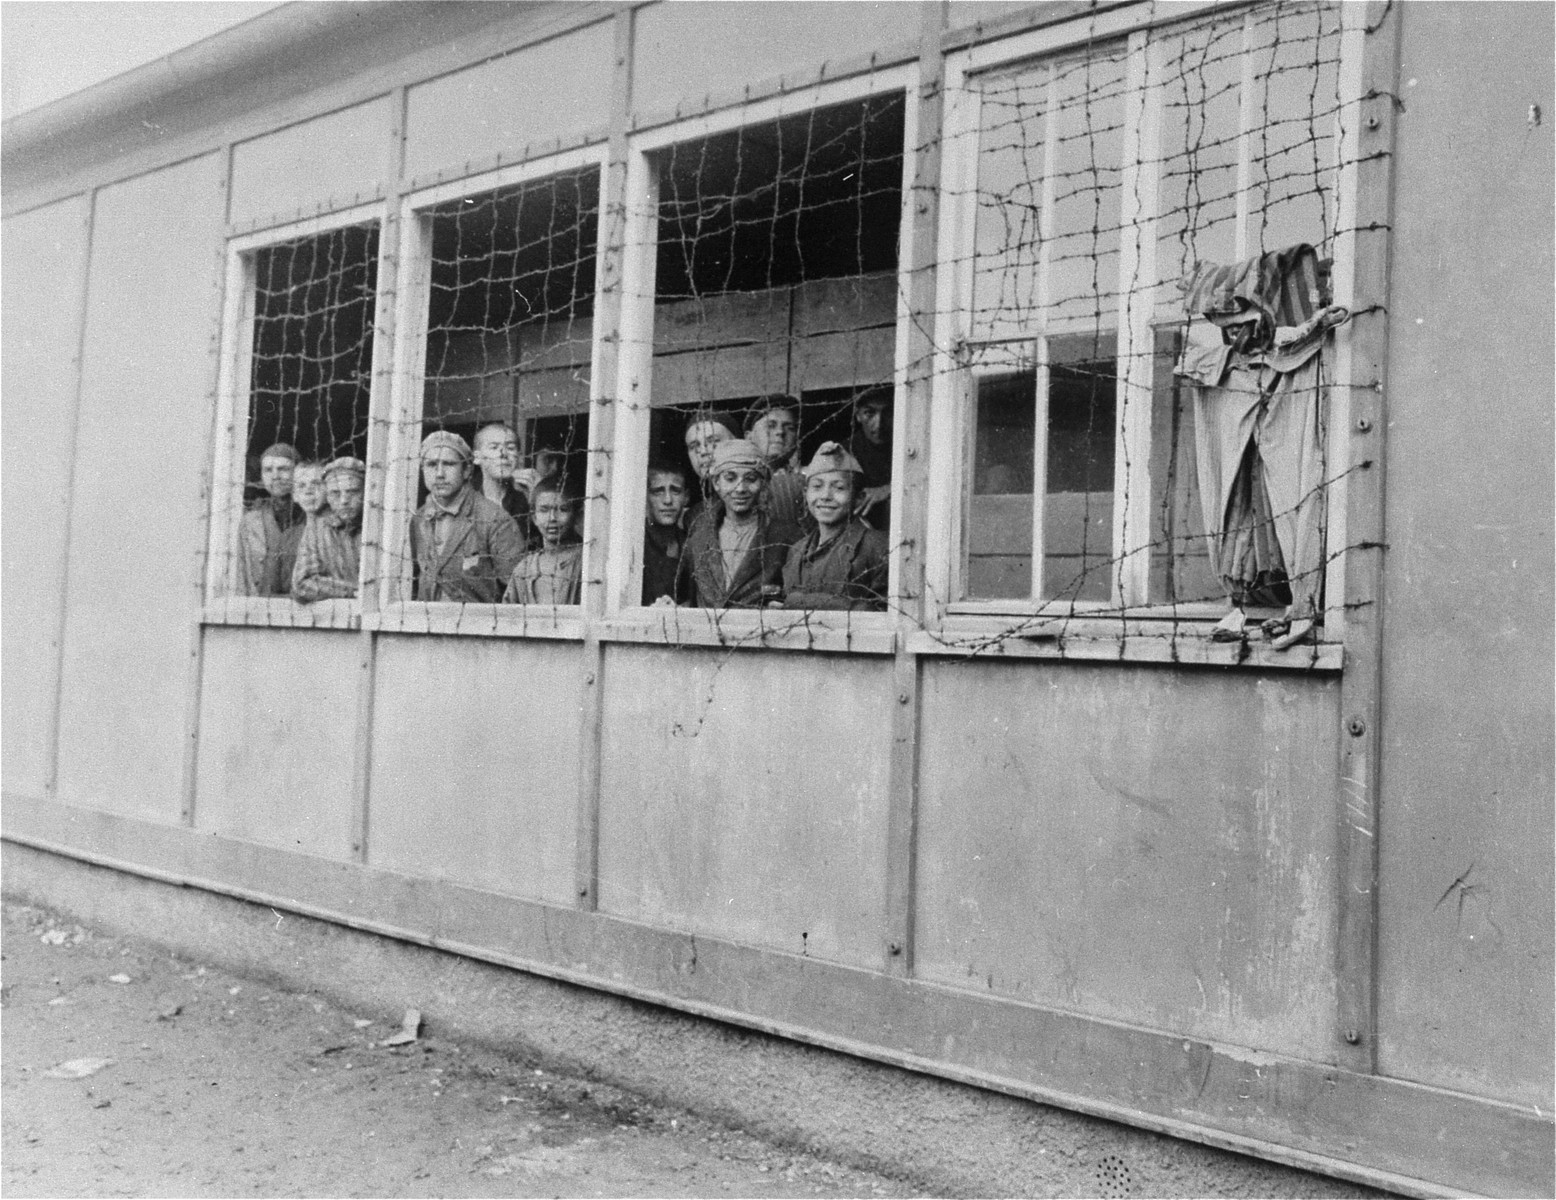 Survivors look out the barbed wire covered windows of barracks in the newly liberated Dachau concentration camp.